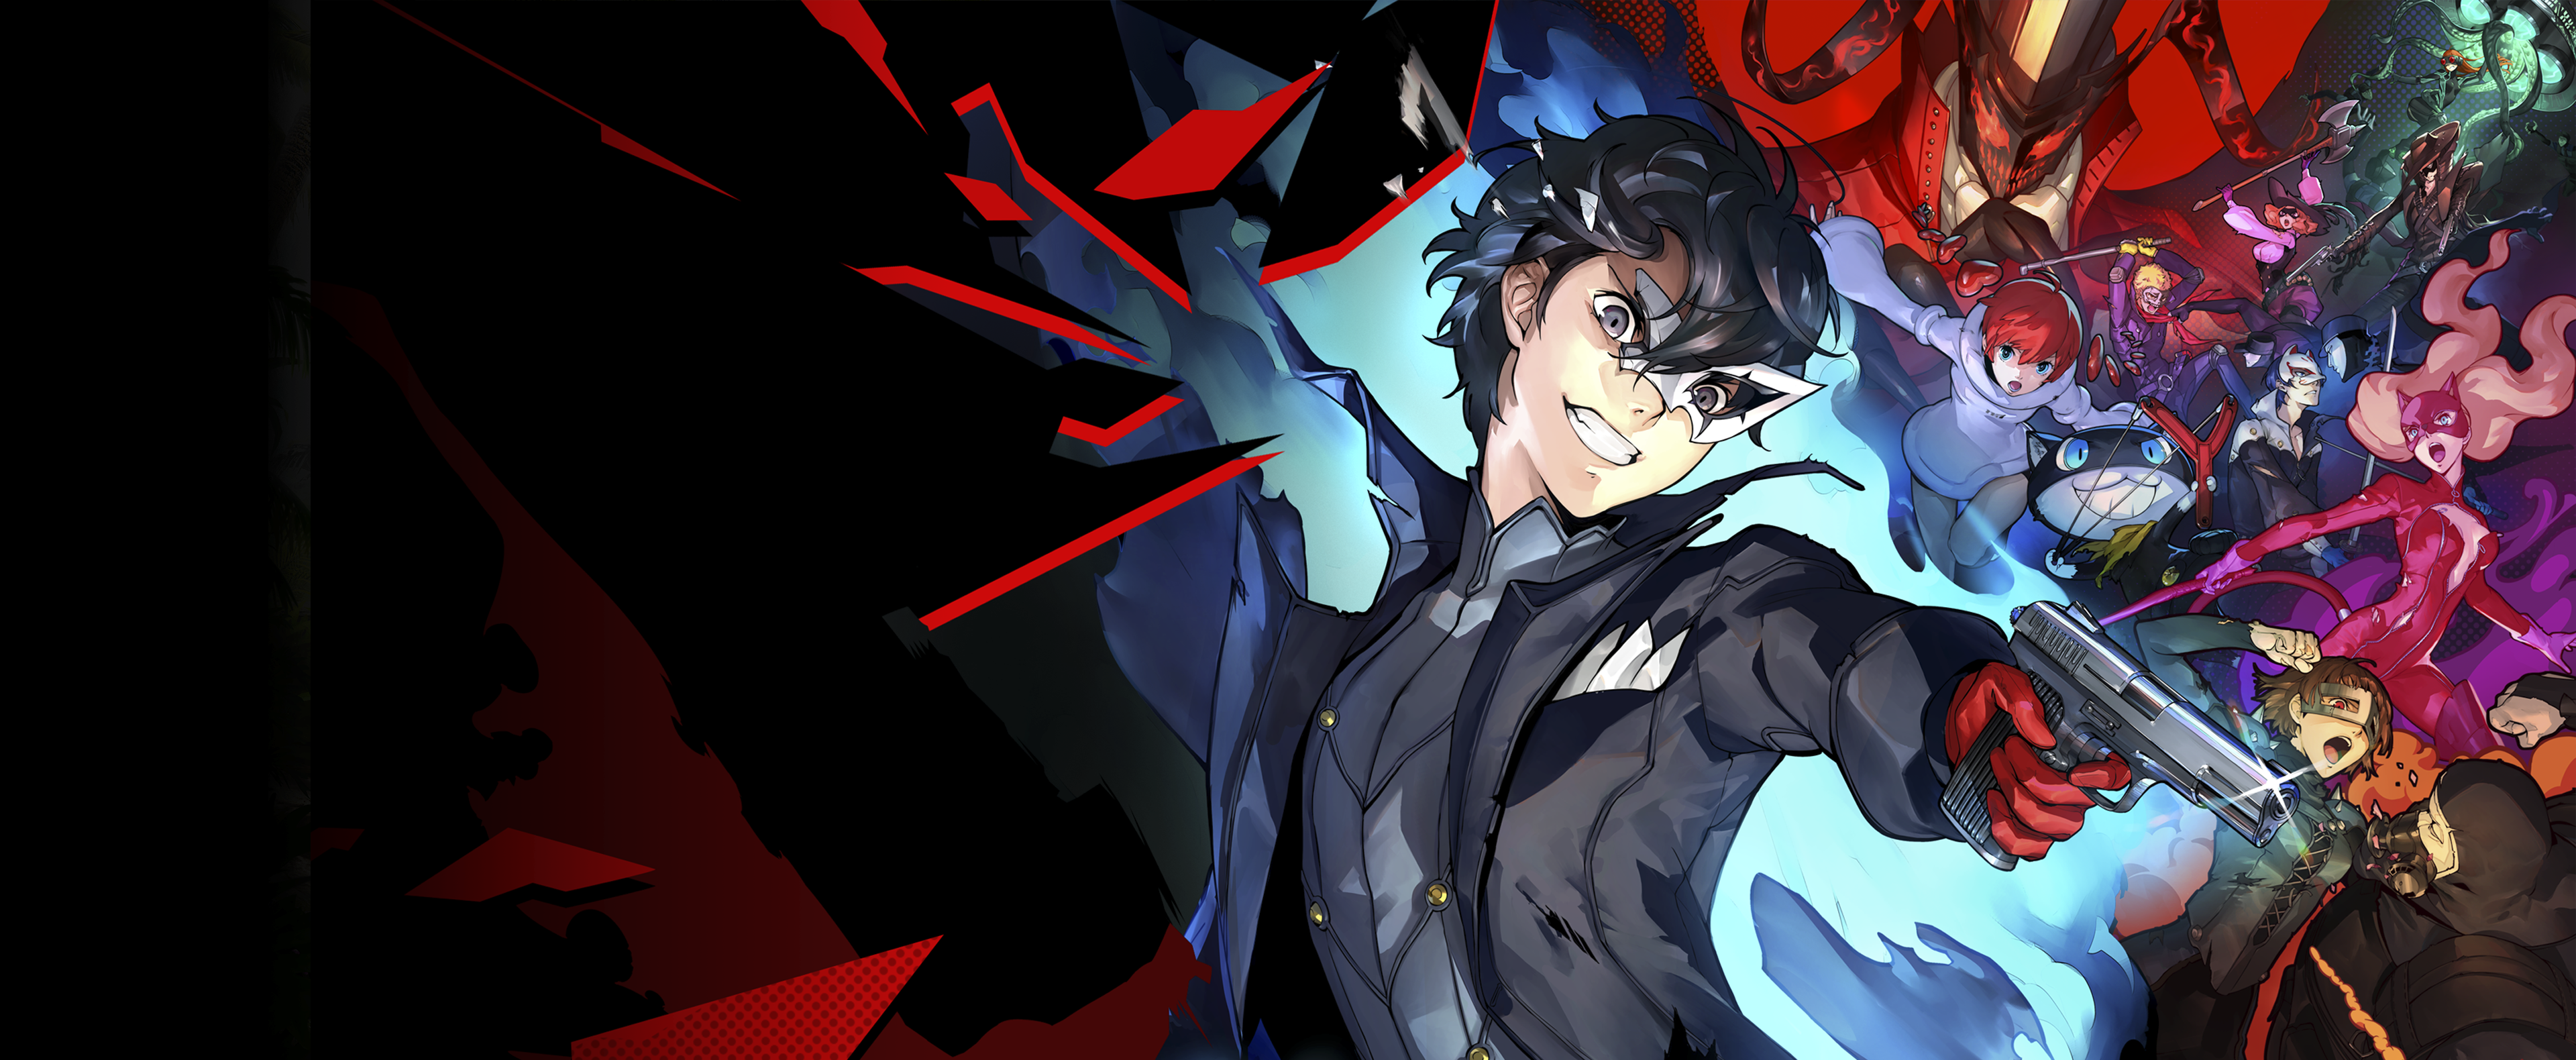 Persona 5 Strikers - Arte principal